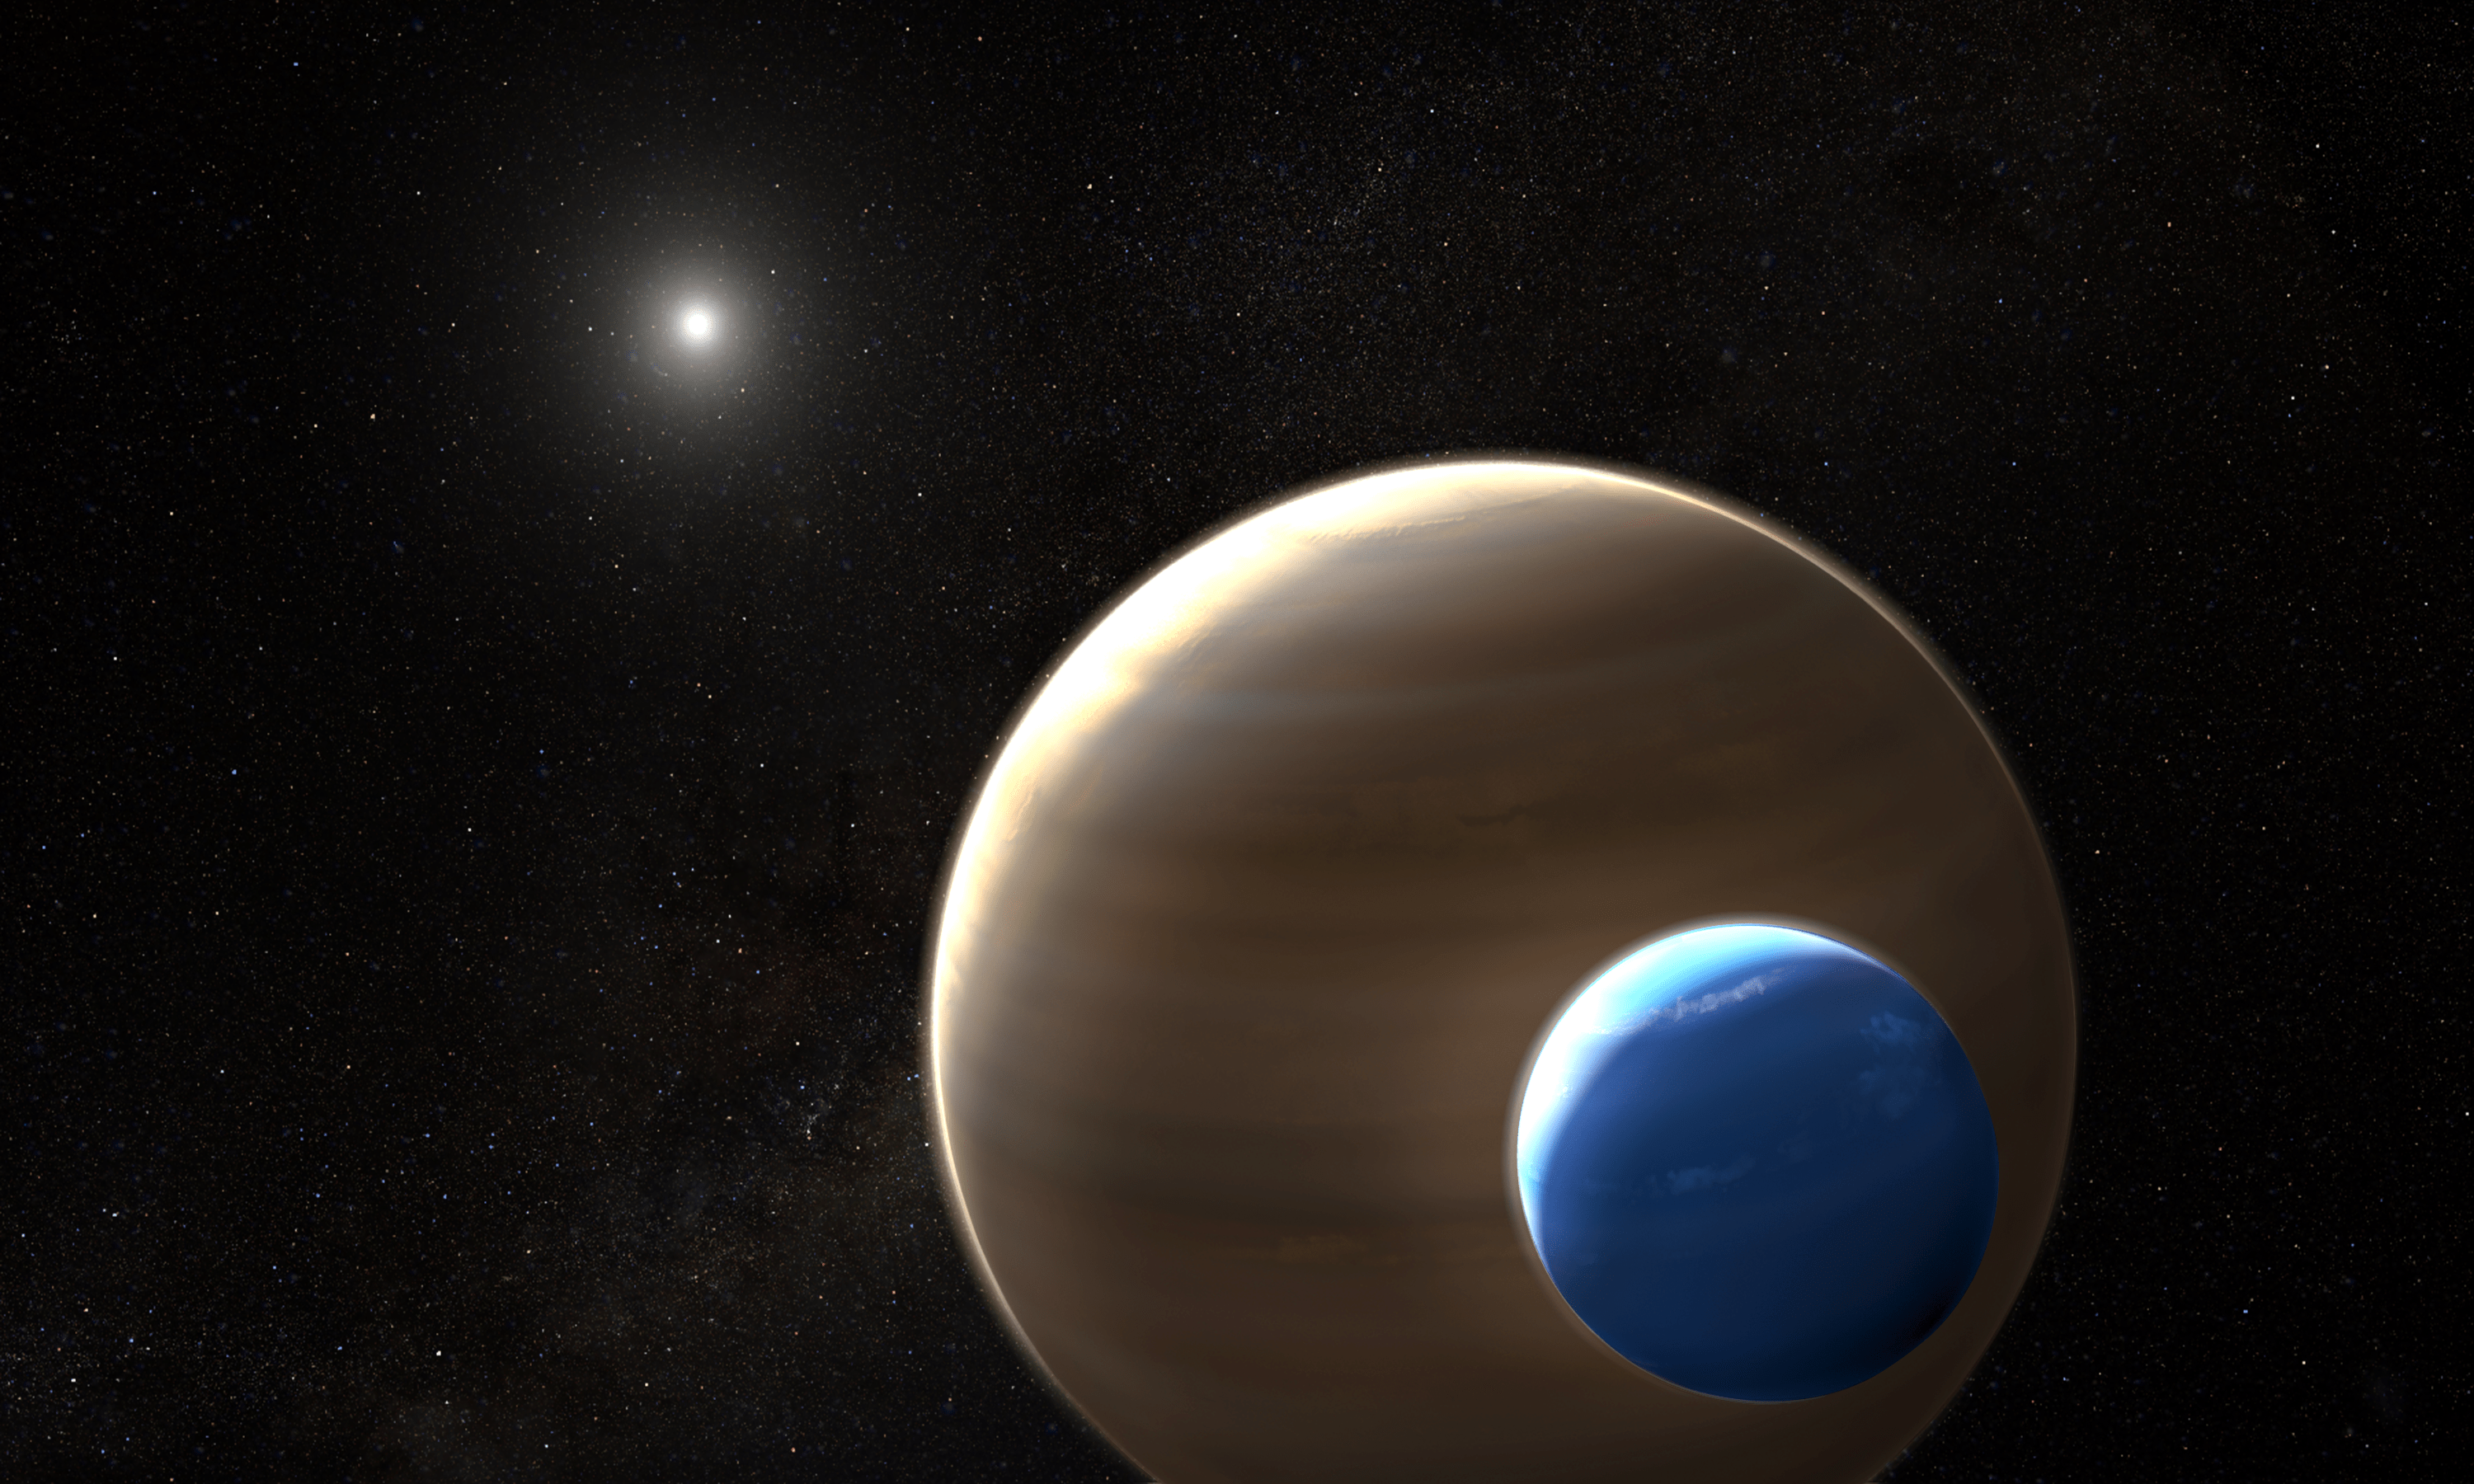 Nasa Telescopes May Have Spotted The First Exomoon